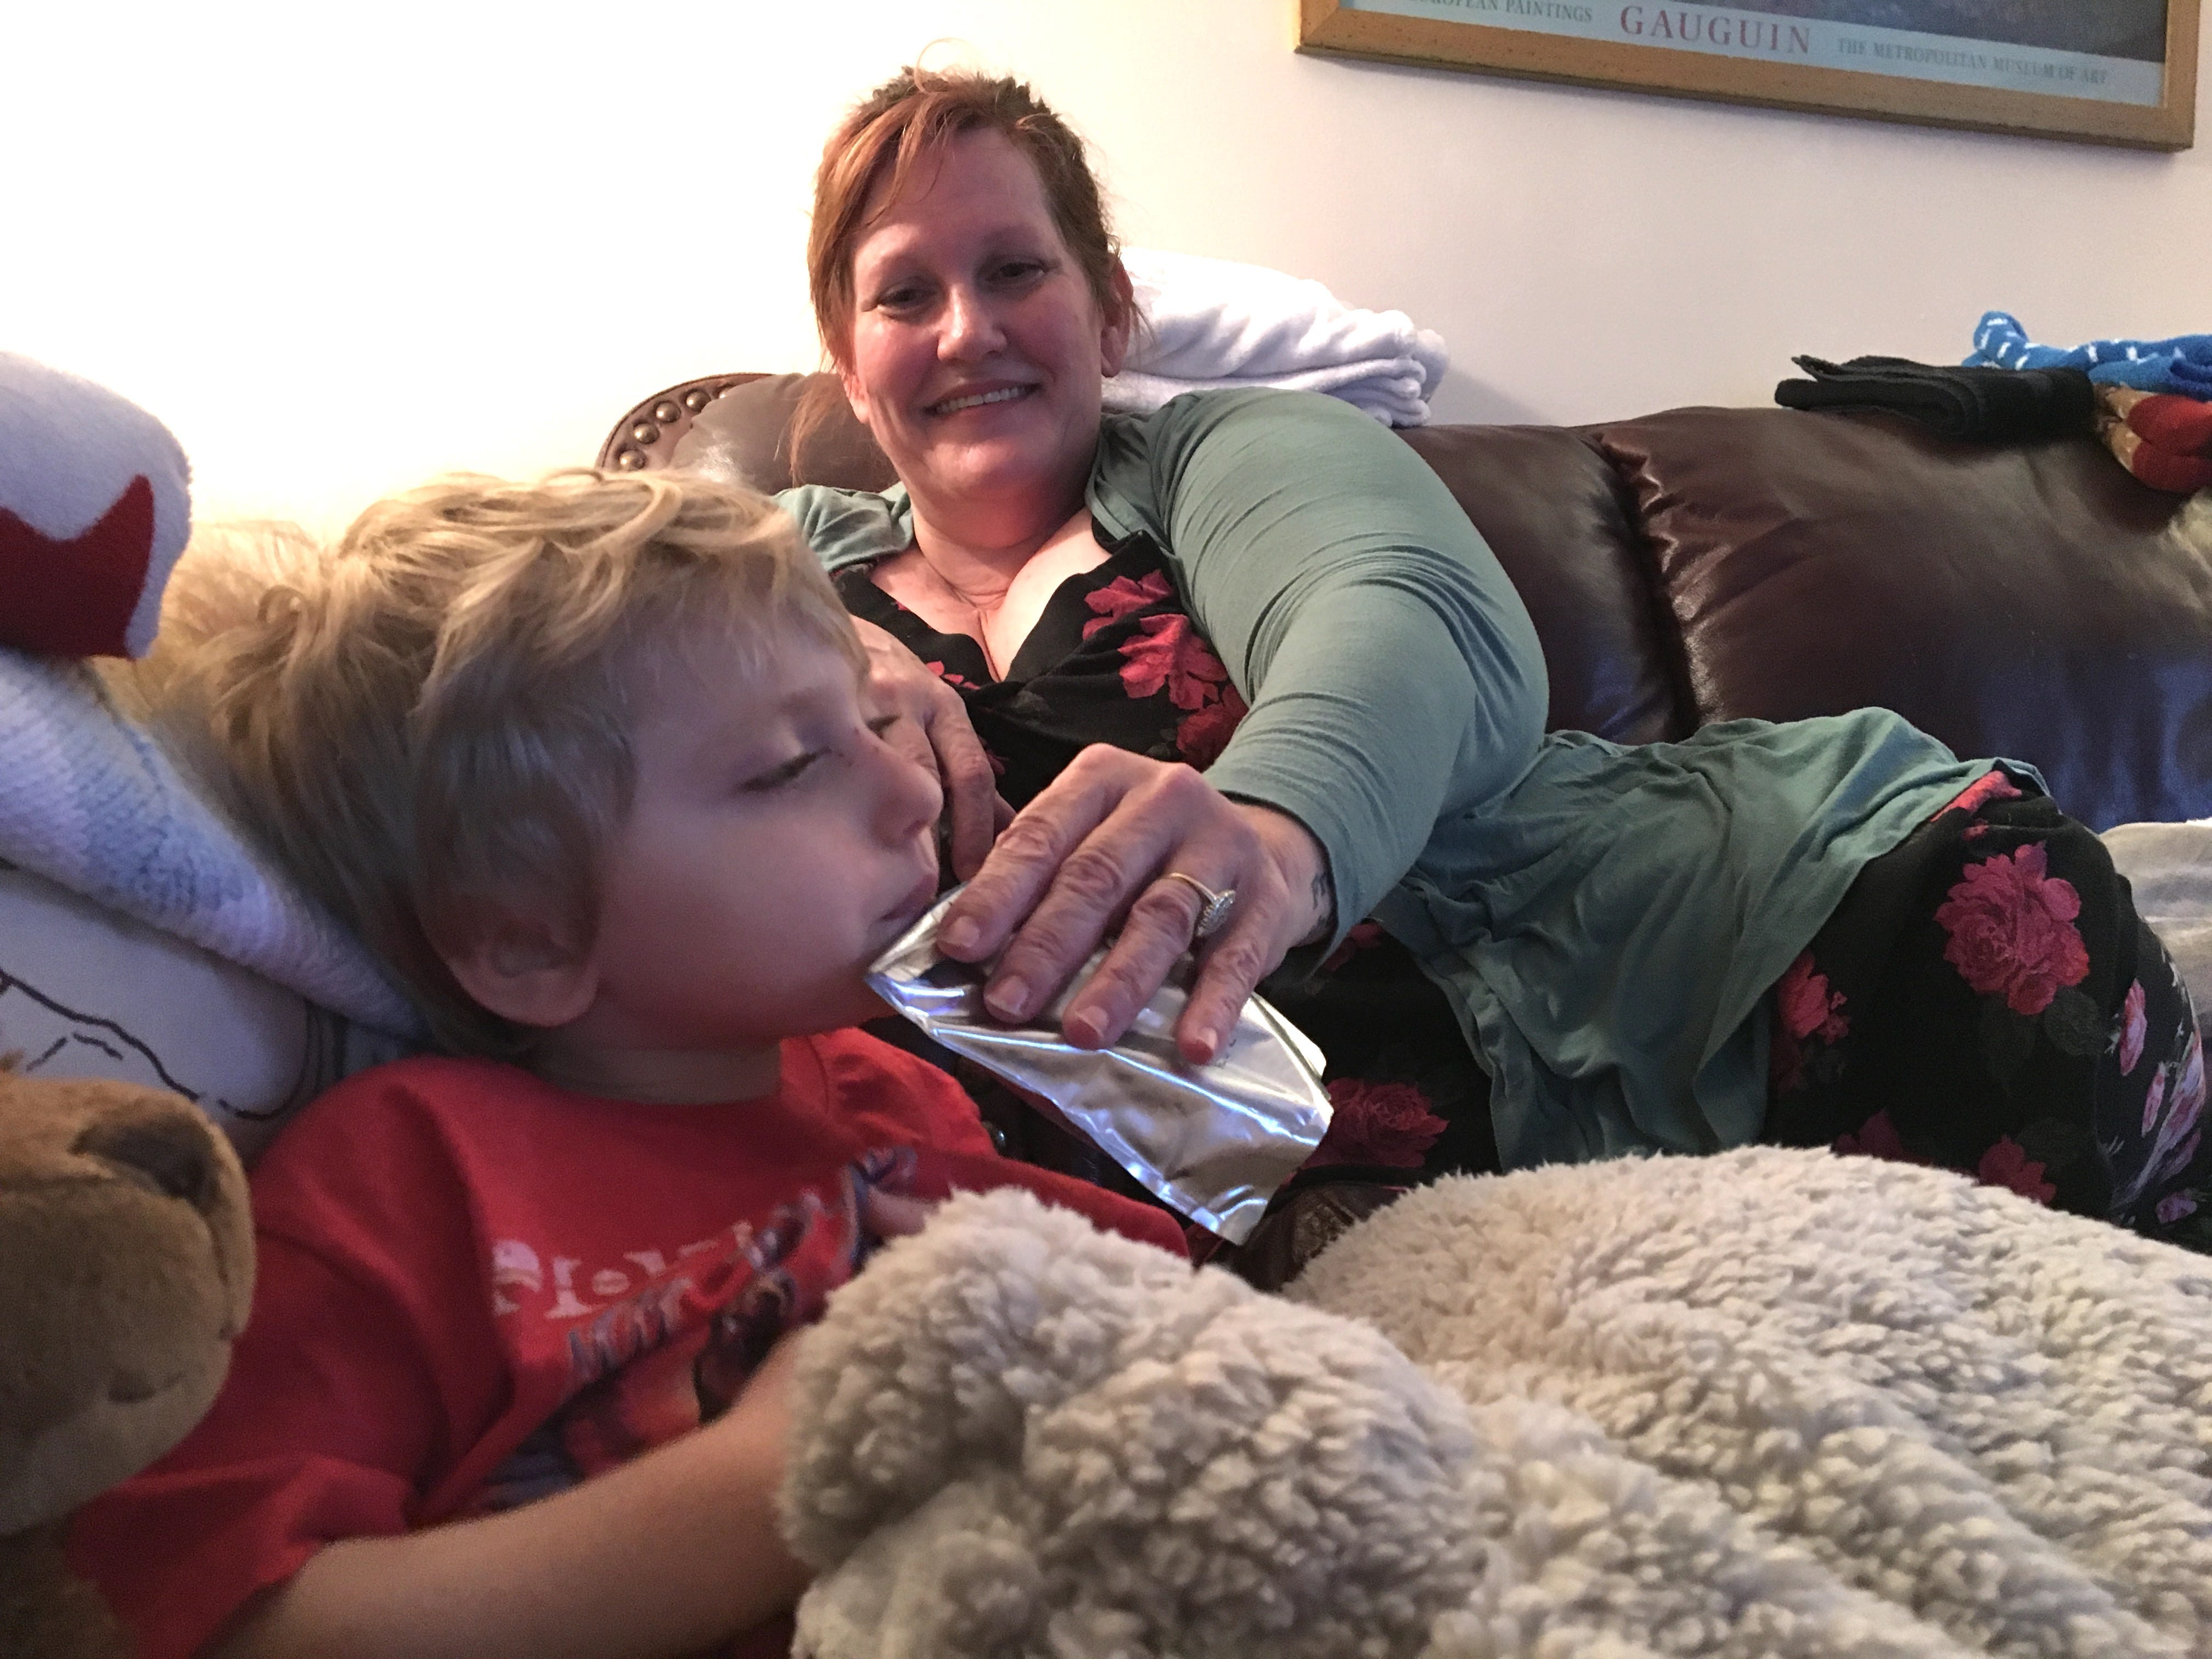 Carson Tugman, 3, and legal guardian and grandmother Kelly Howe at their home in Staunton on Monday, Dec. 31, 2018. Tugman suffers from a progressive neurodevelopmental disorder caused by a pathogenic variant of the MECP2 gene, known as Rett Syndrome.